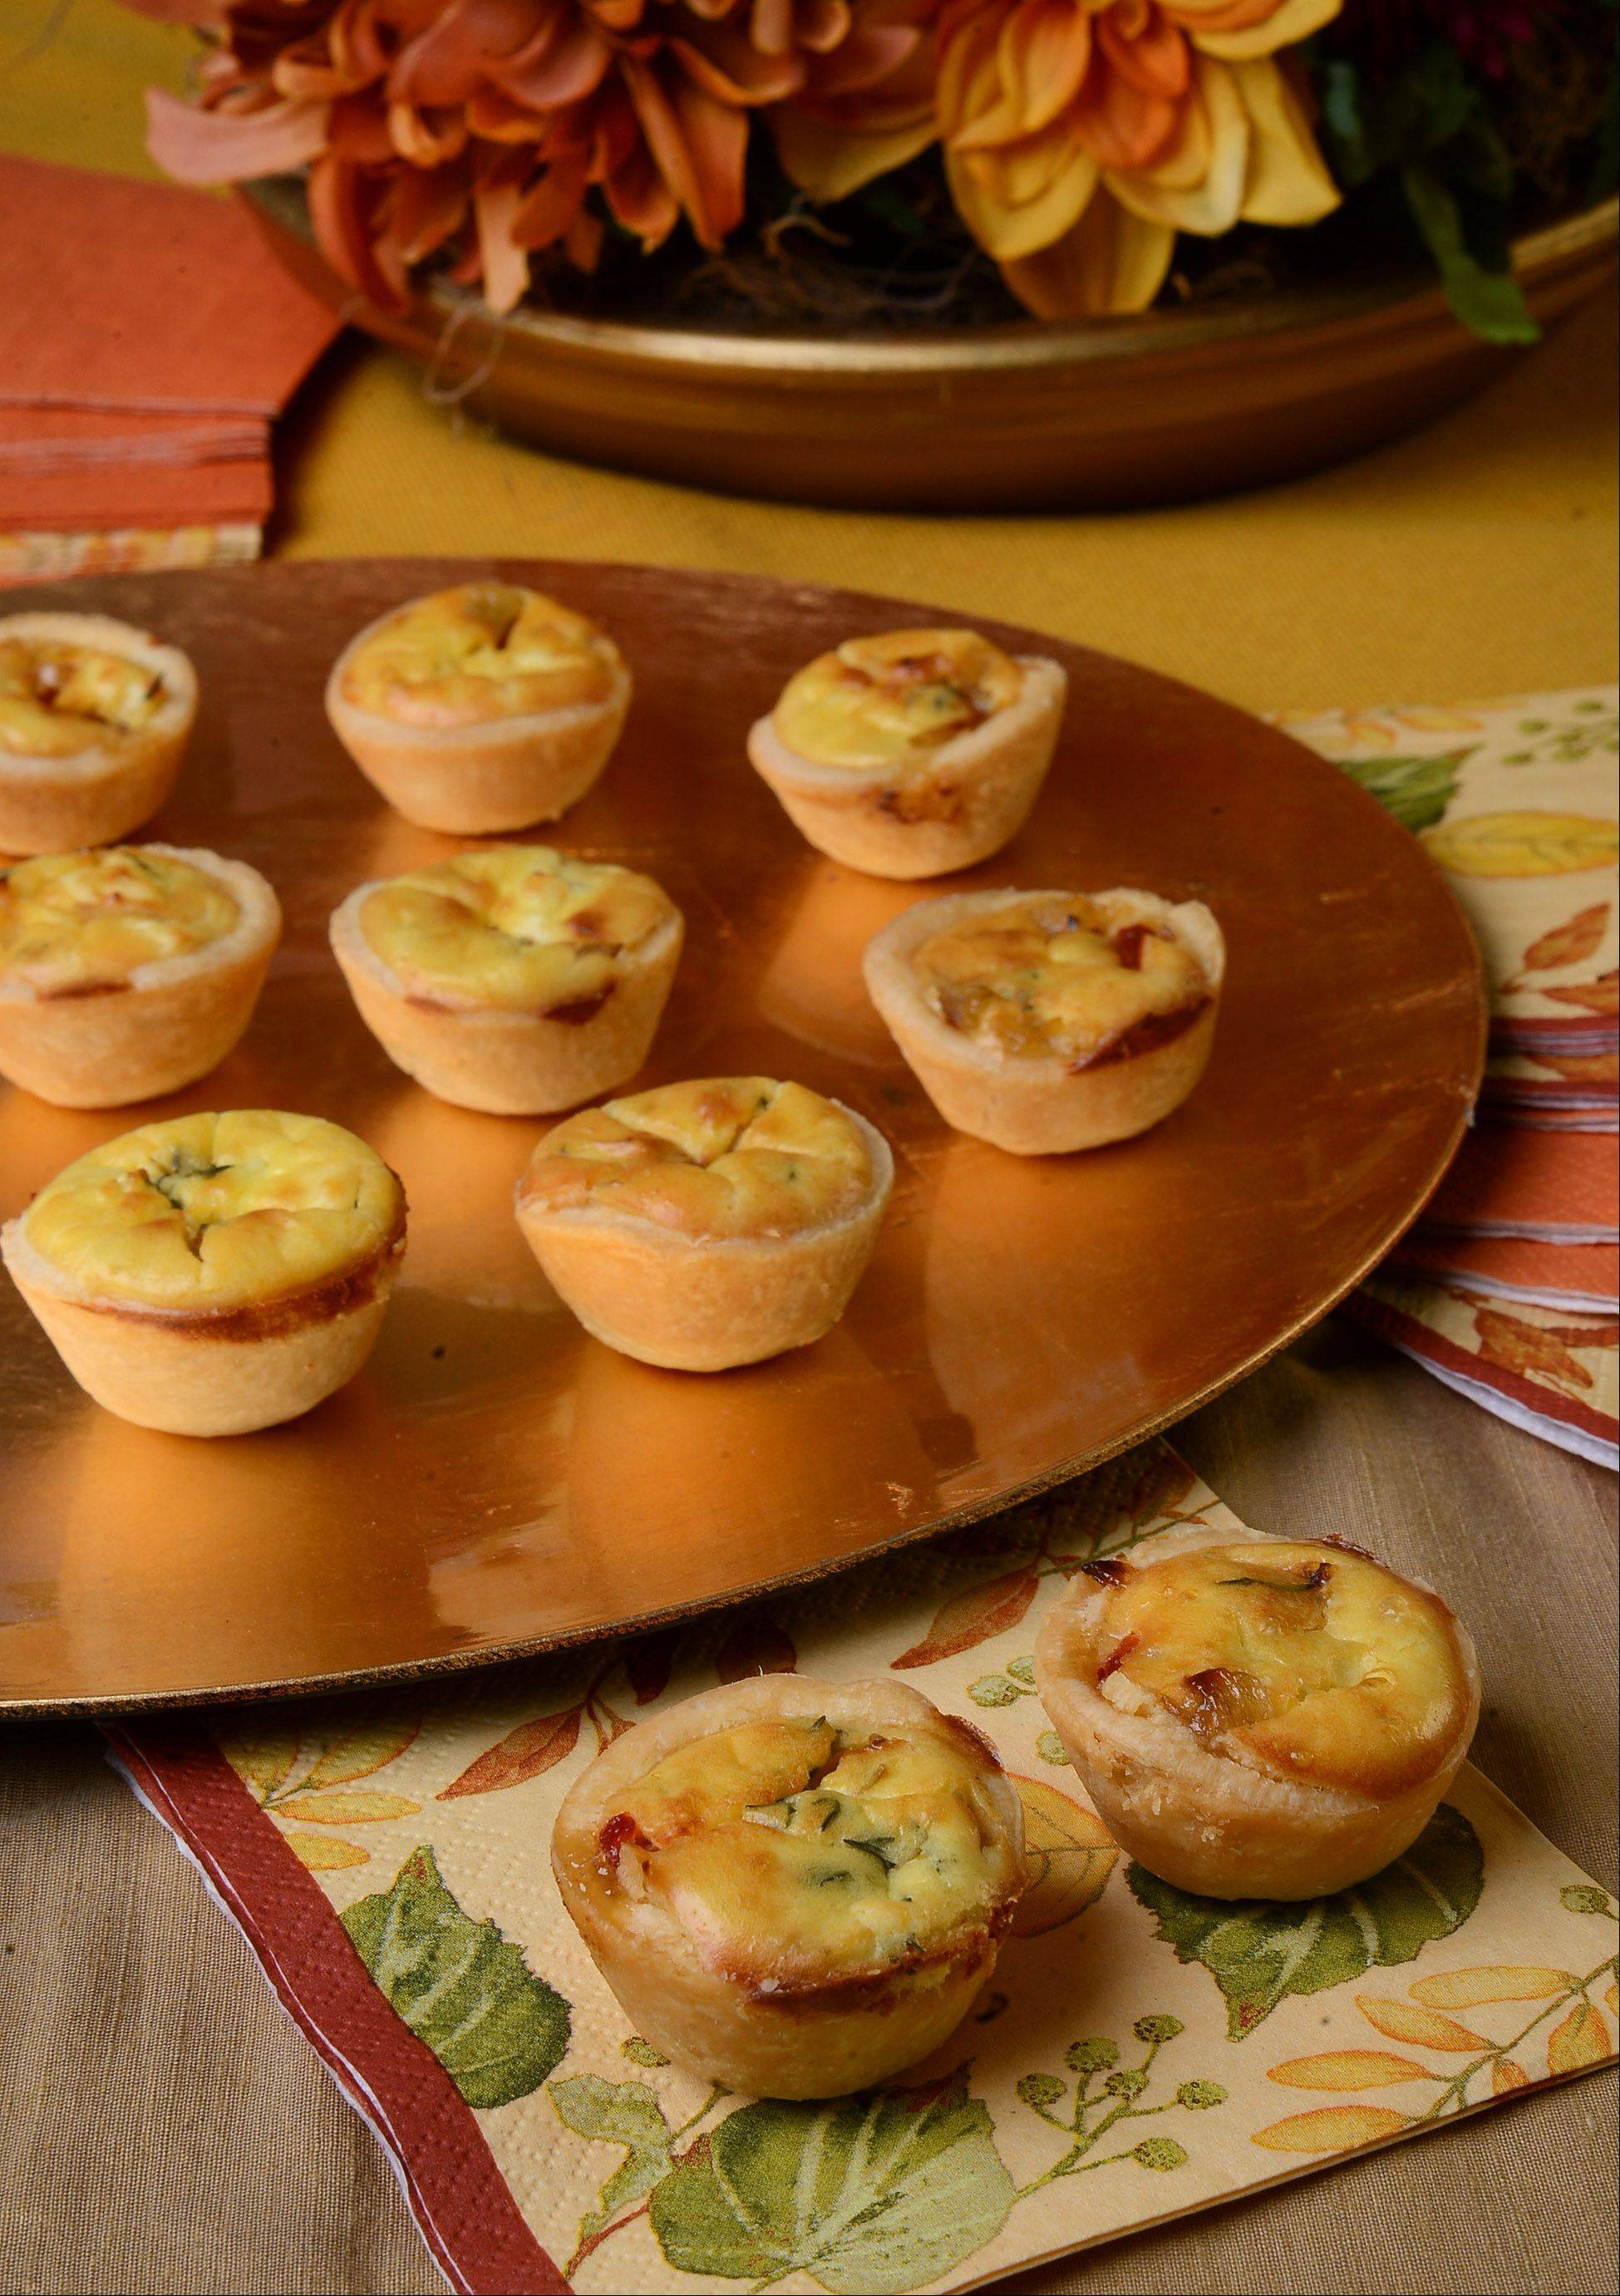 Kids who want to help their parents get ready for holiday parties can put together these cheesy mini quiches. This is a very easy-to-follow recipe.